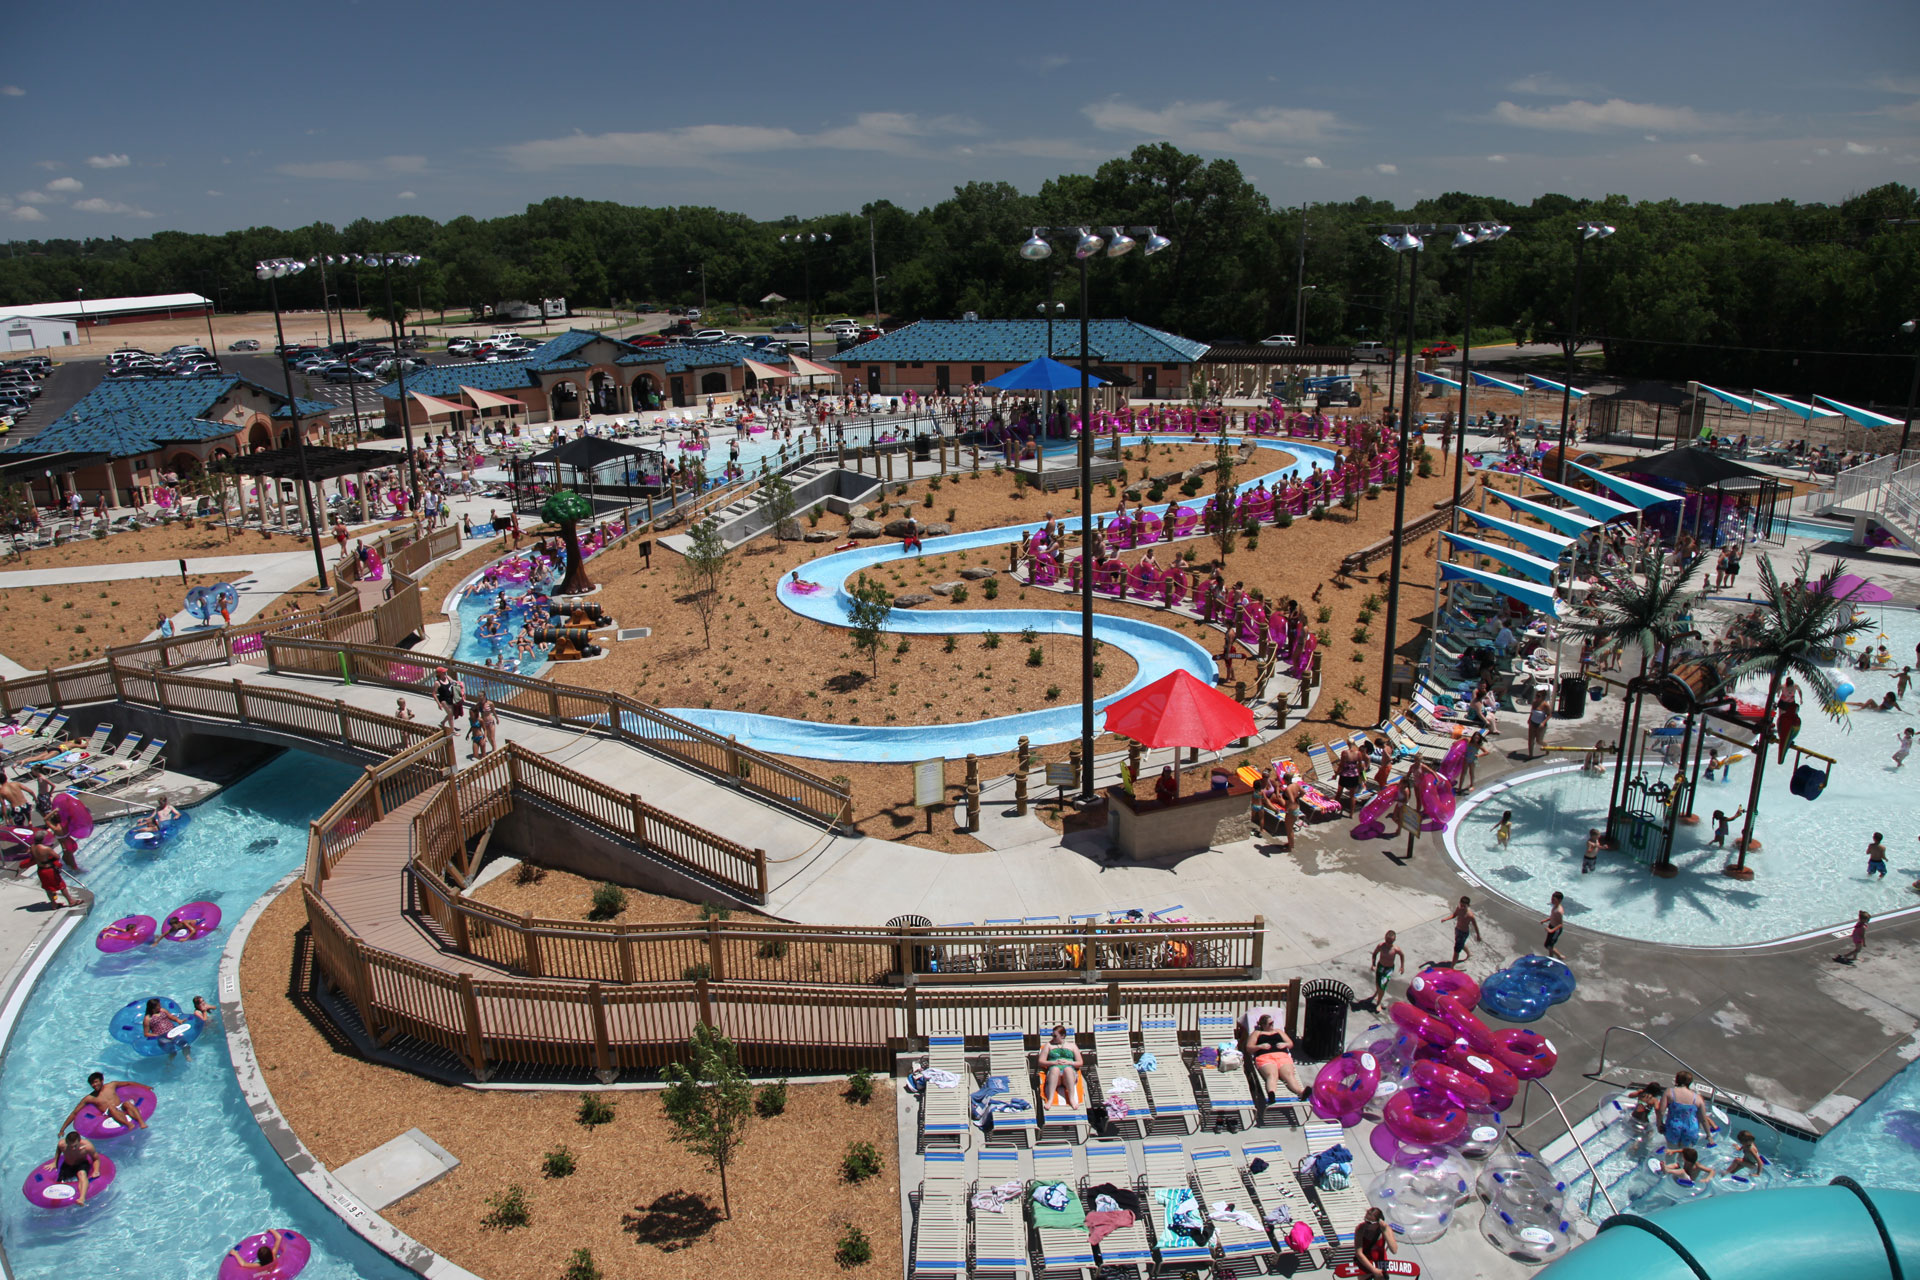 Kenwood Cove Waterpark - Largest Municipal Waterpark in US